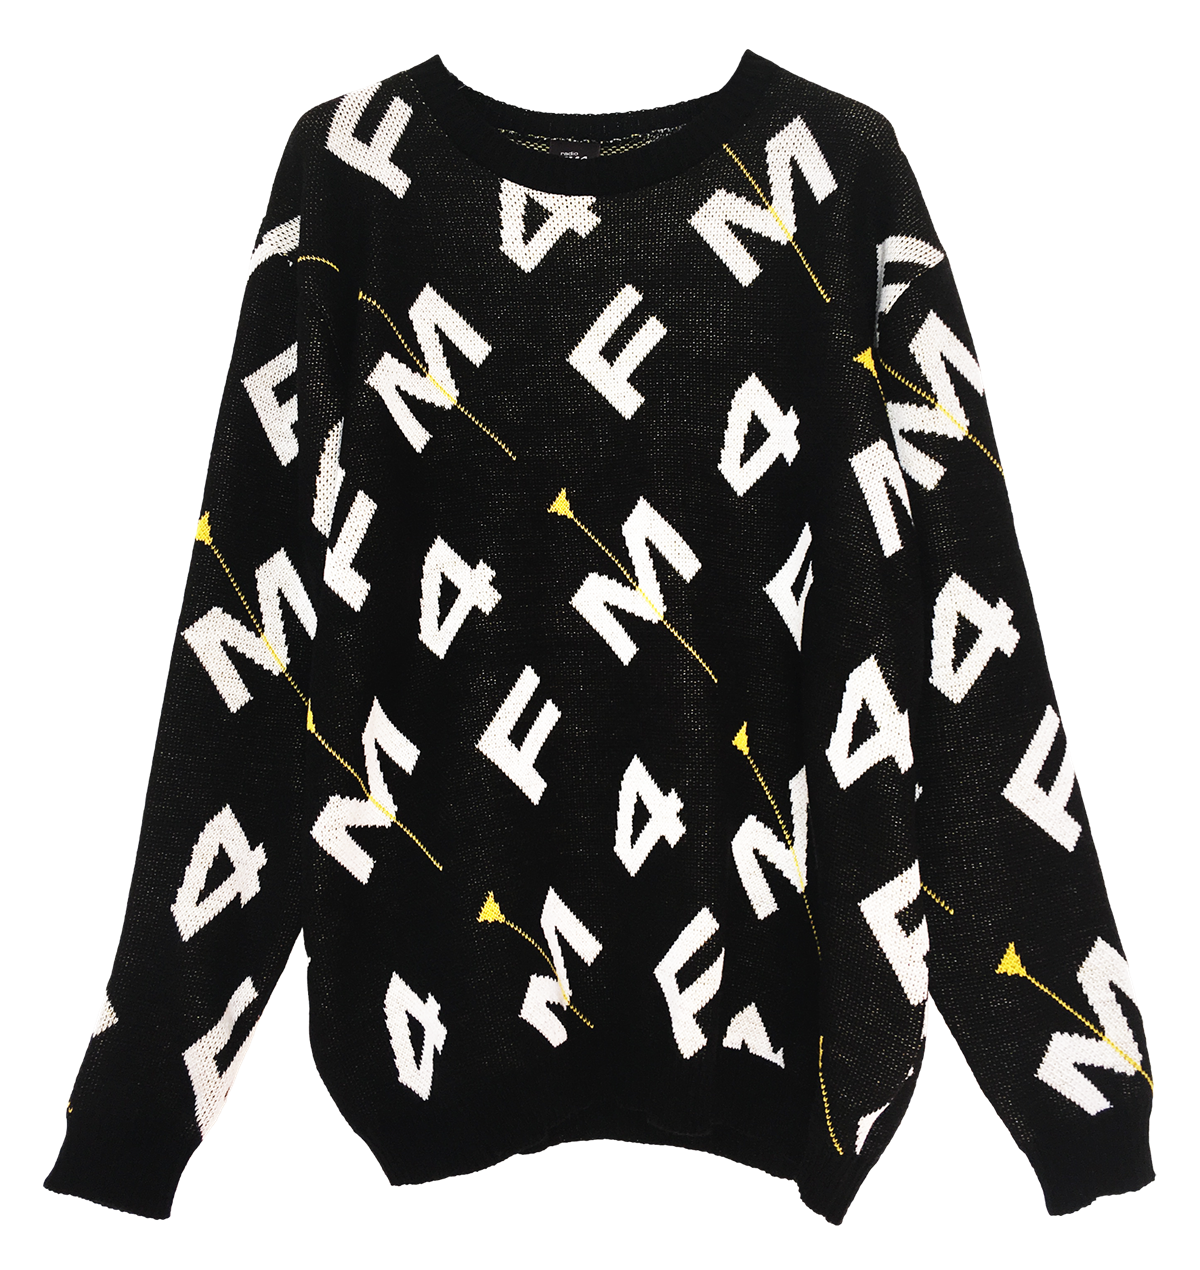 FM4 x peng! - 25 years anniversary collection_Strickpulli_front_EUR 119